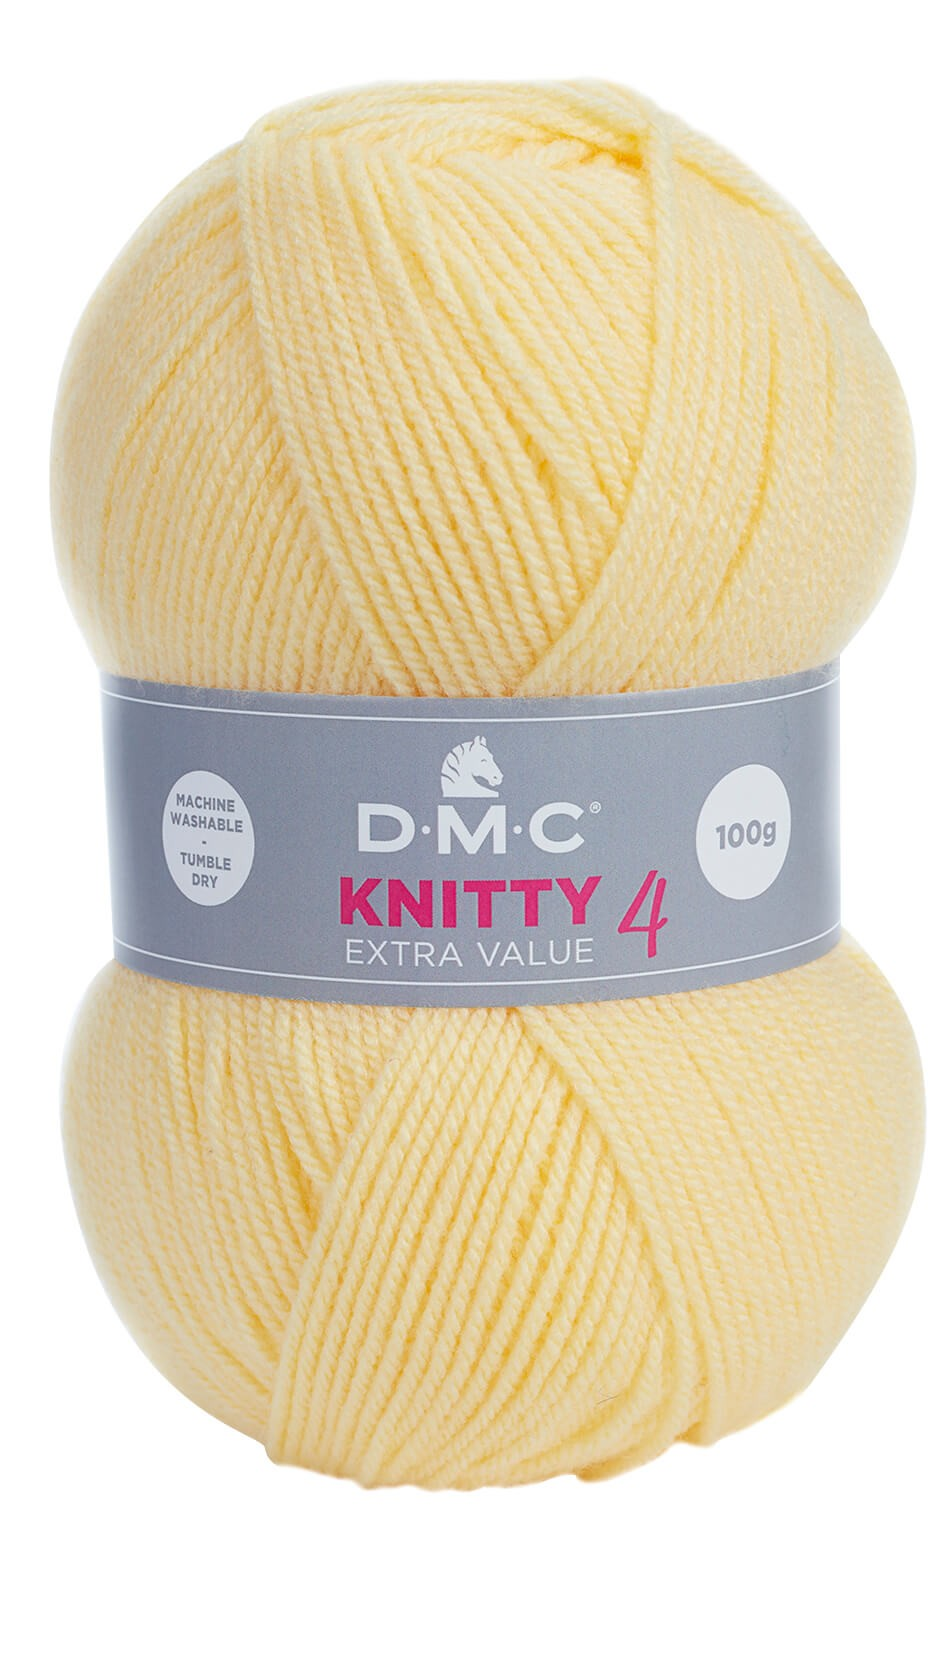 Lana acrílica DMC Knitty 4 Just Knitting 100 g 957